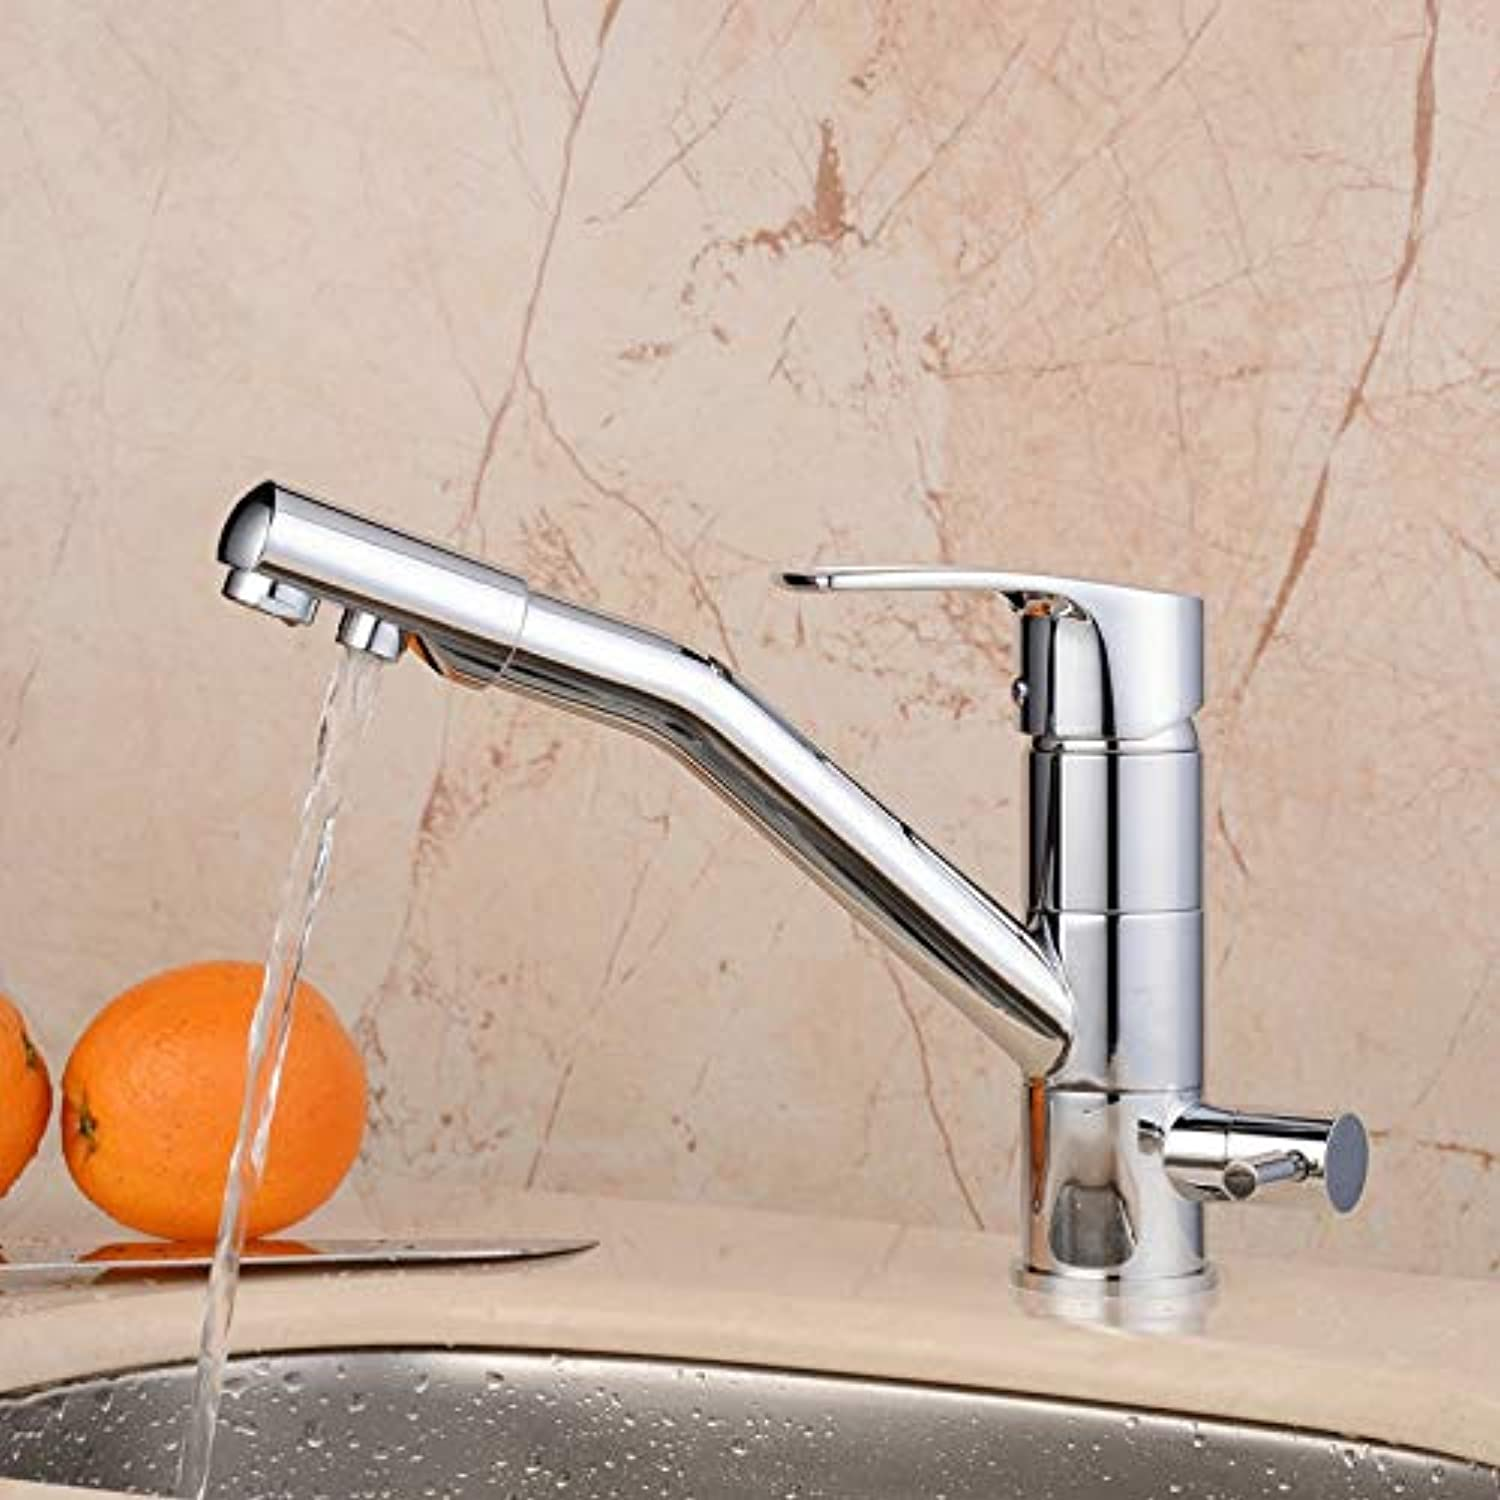 ROKTONG Commercial Chrome Solid Brass Single Hole Double Handles 3 Way Water Filter Square Swivel Spout Sink Mixer Tap